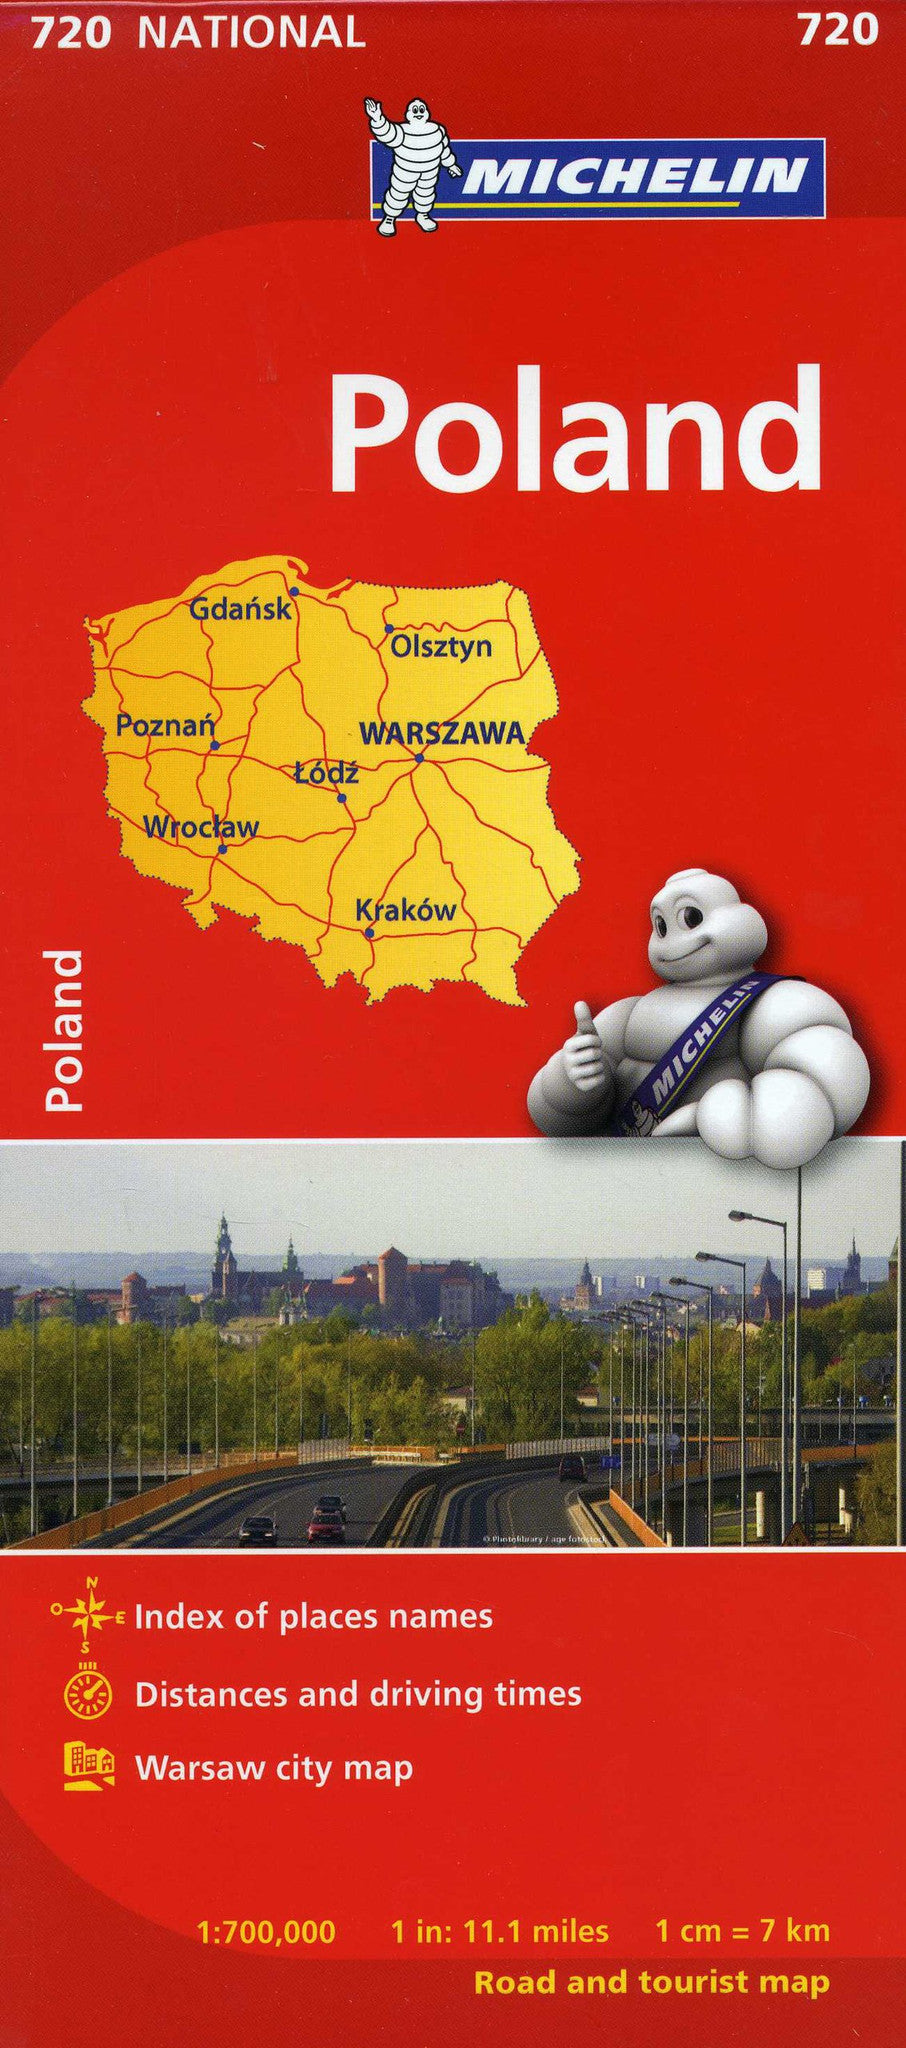 Poland Michelin Map 720